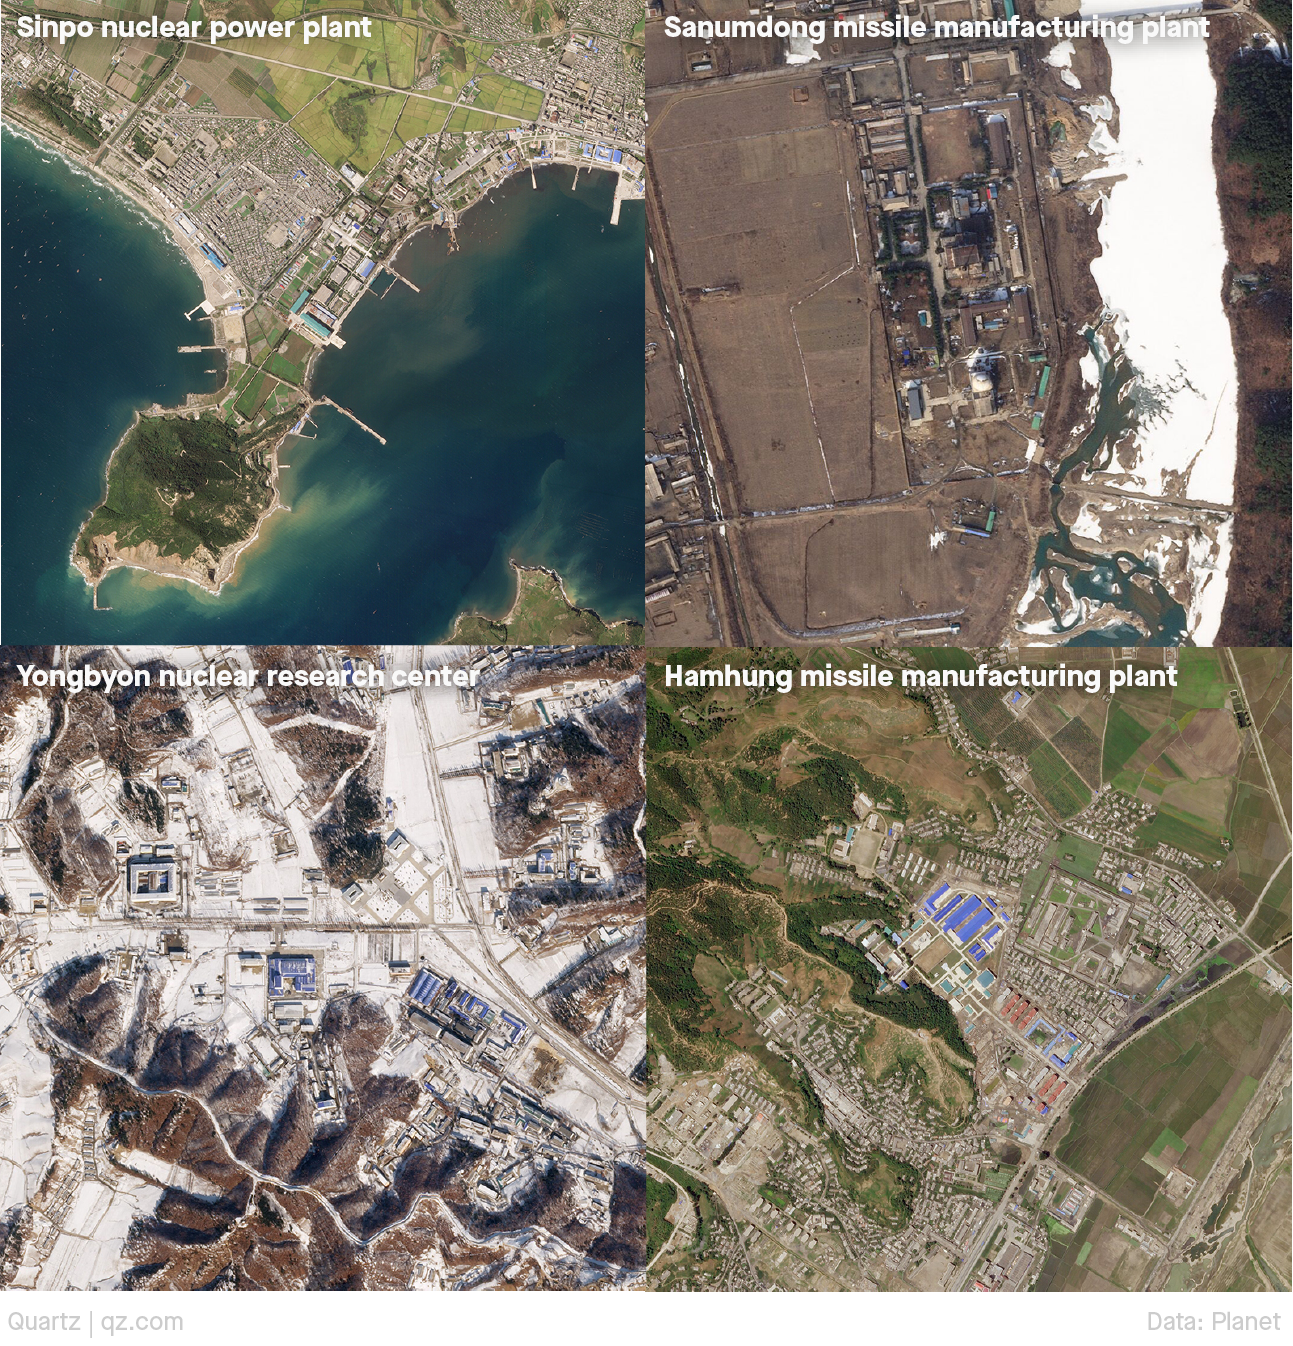 Four satellite images of other nuclear plants of interest in the Korean peninsula. They are (clockwise): Sinpo, Sanumdong, Yongbyon, and Hamhung.